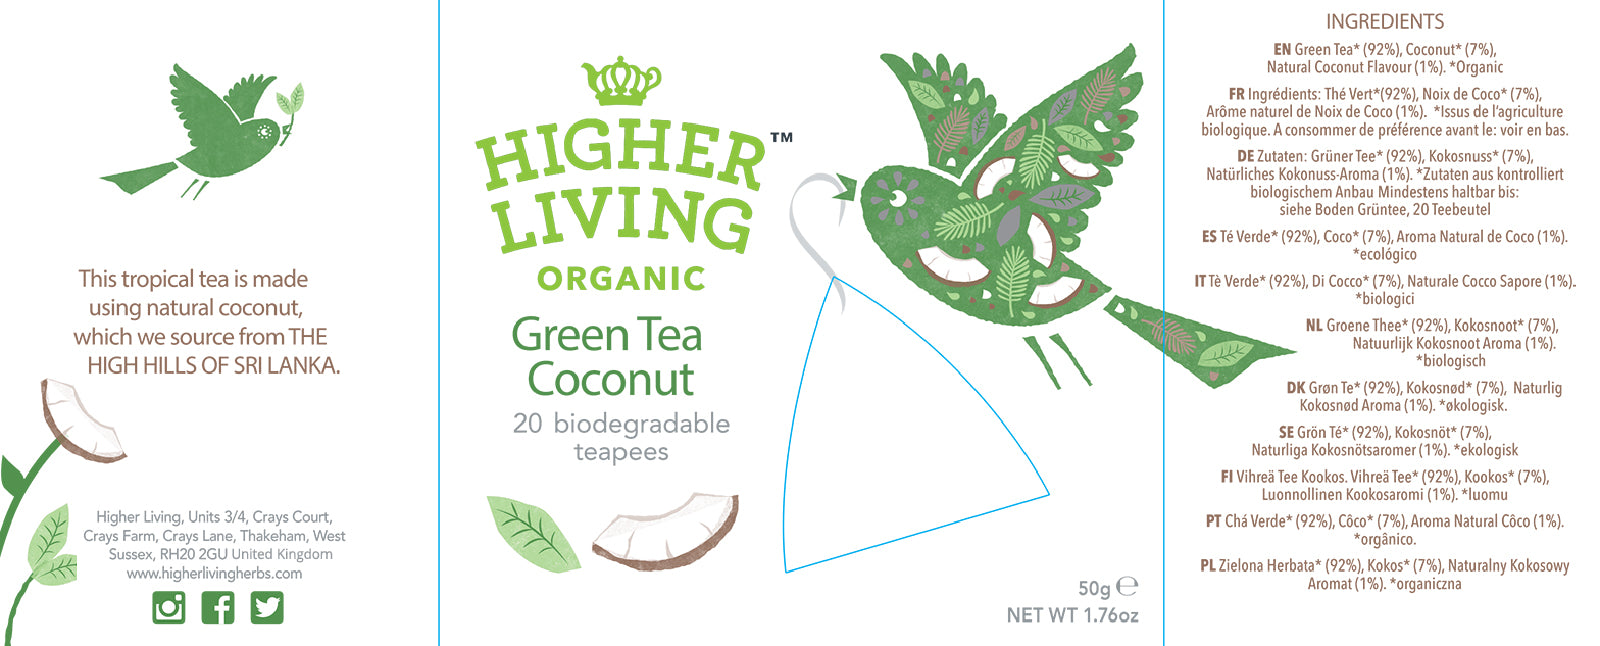 Higher Living Organic Green Tea Coconut (20 teapee bags / 40g)